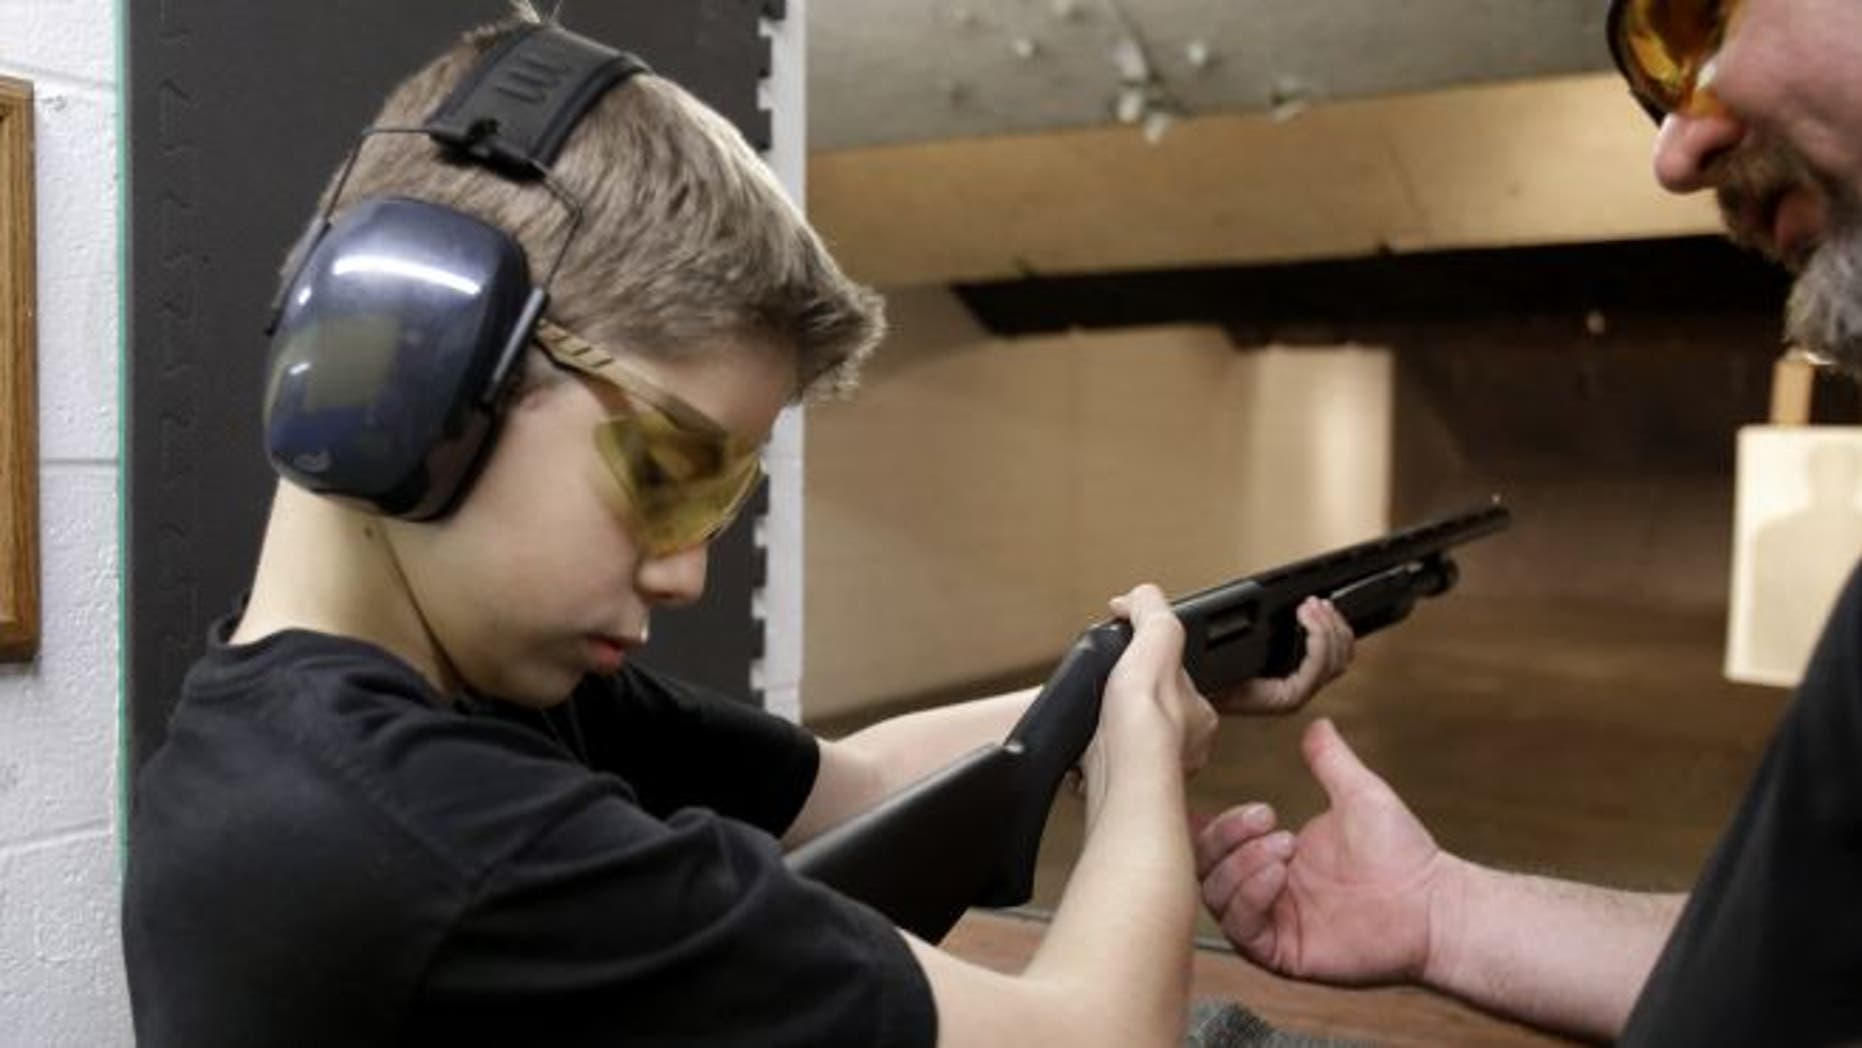 In this photo, Dan Blackford, right, shows Rory Strain, 12, how to hold a shotgun at a shooting range in Houston.